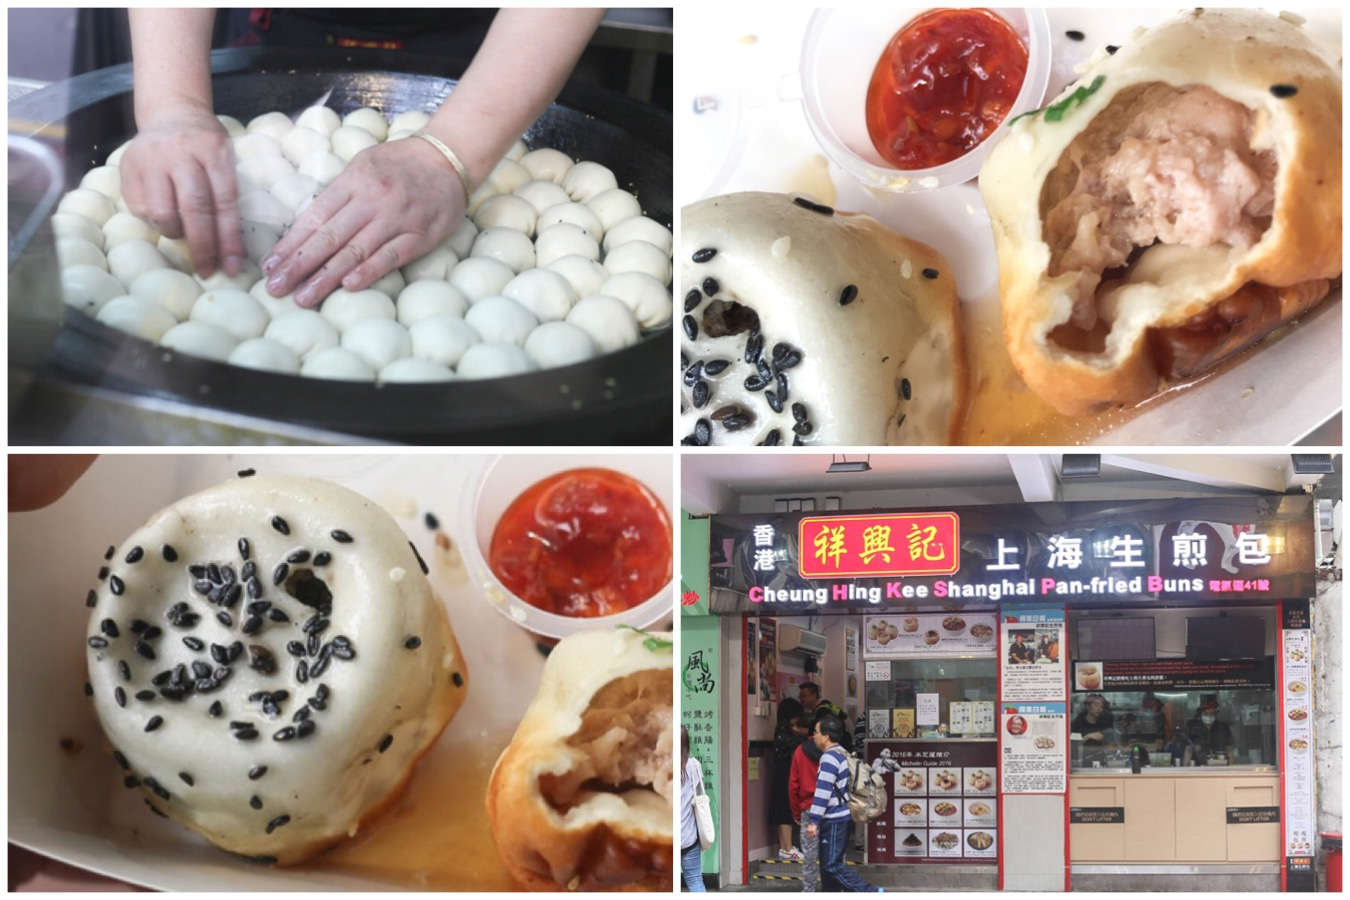 Cheung Hing Kee Shanghai Pan-fried Buns 祥興記上海生煎包 – Truffle Sheng Jian Bao In Hong Kong With Michelin Recommendation